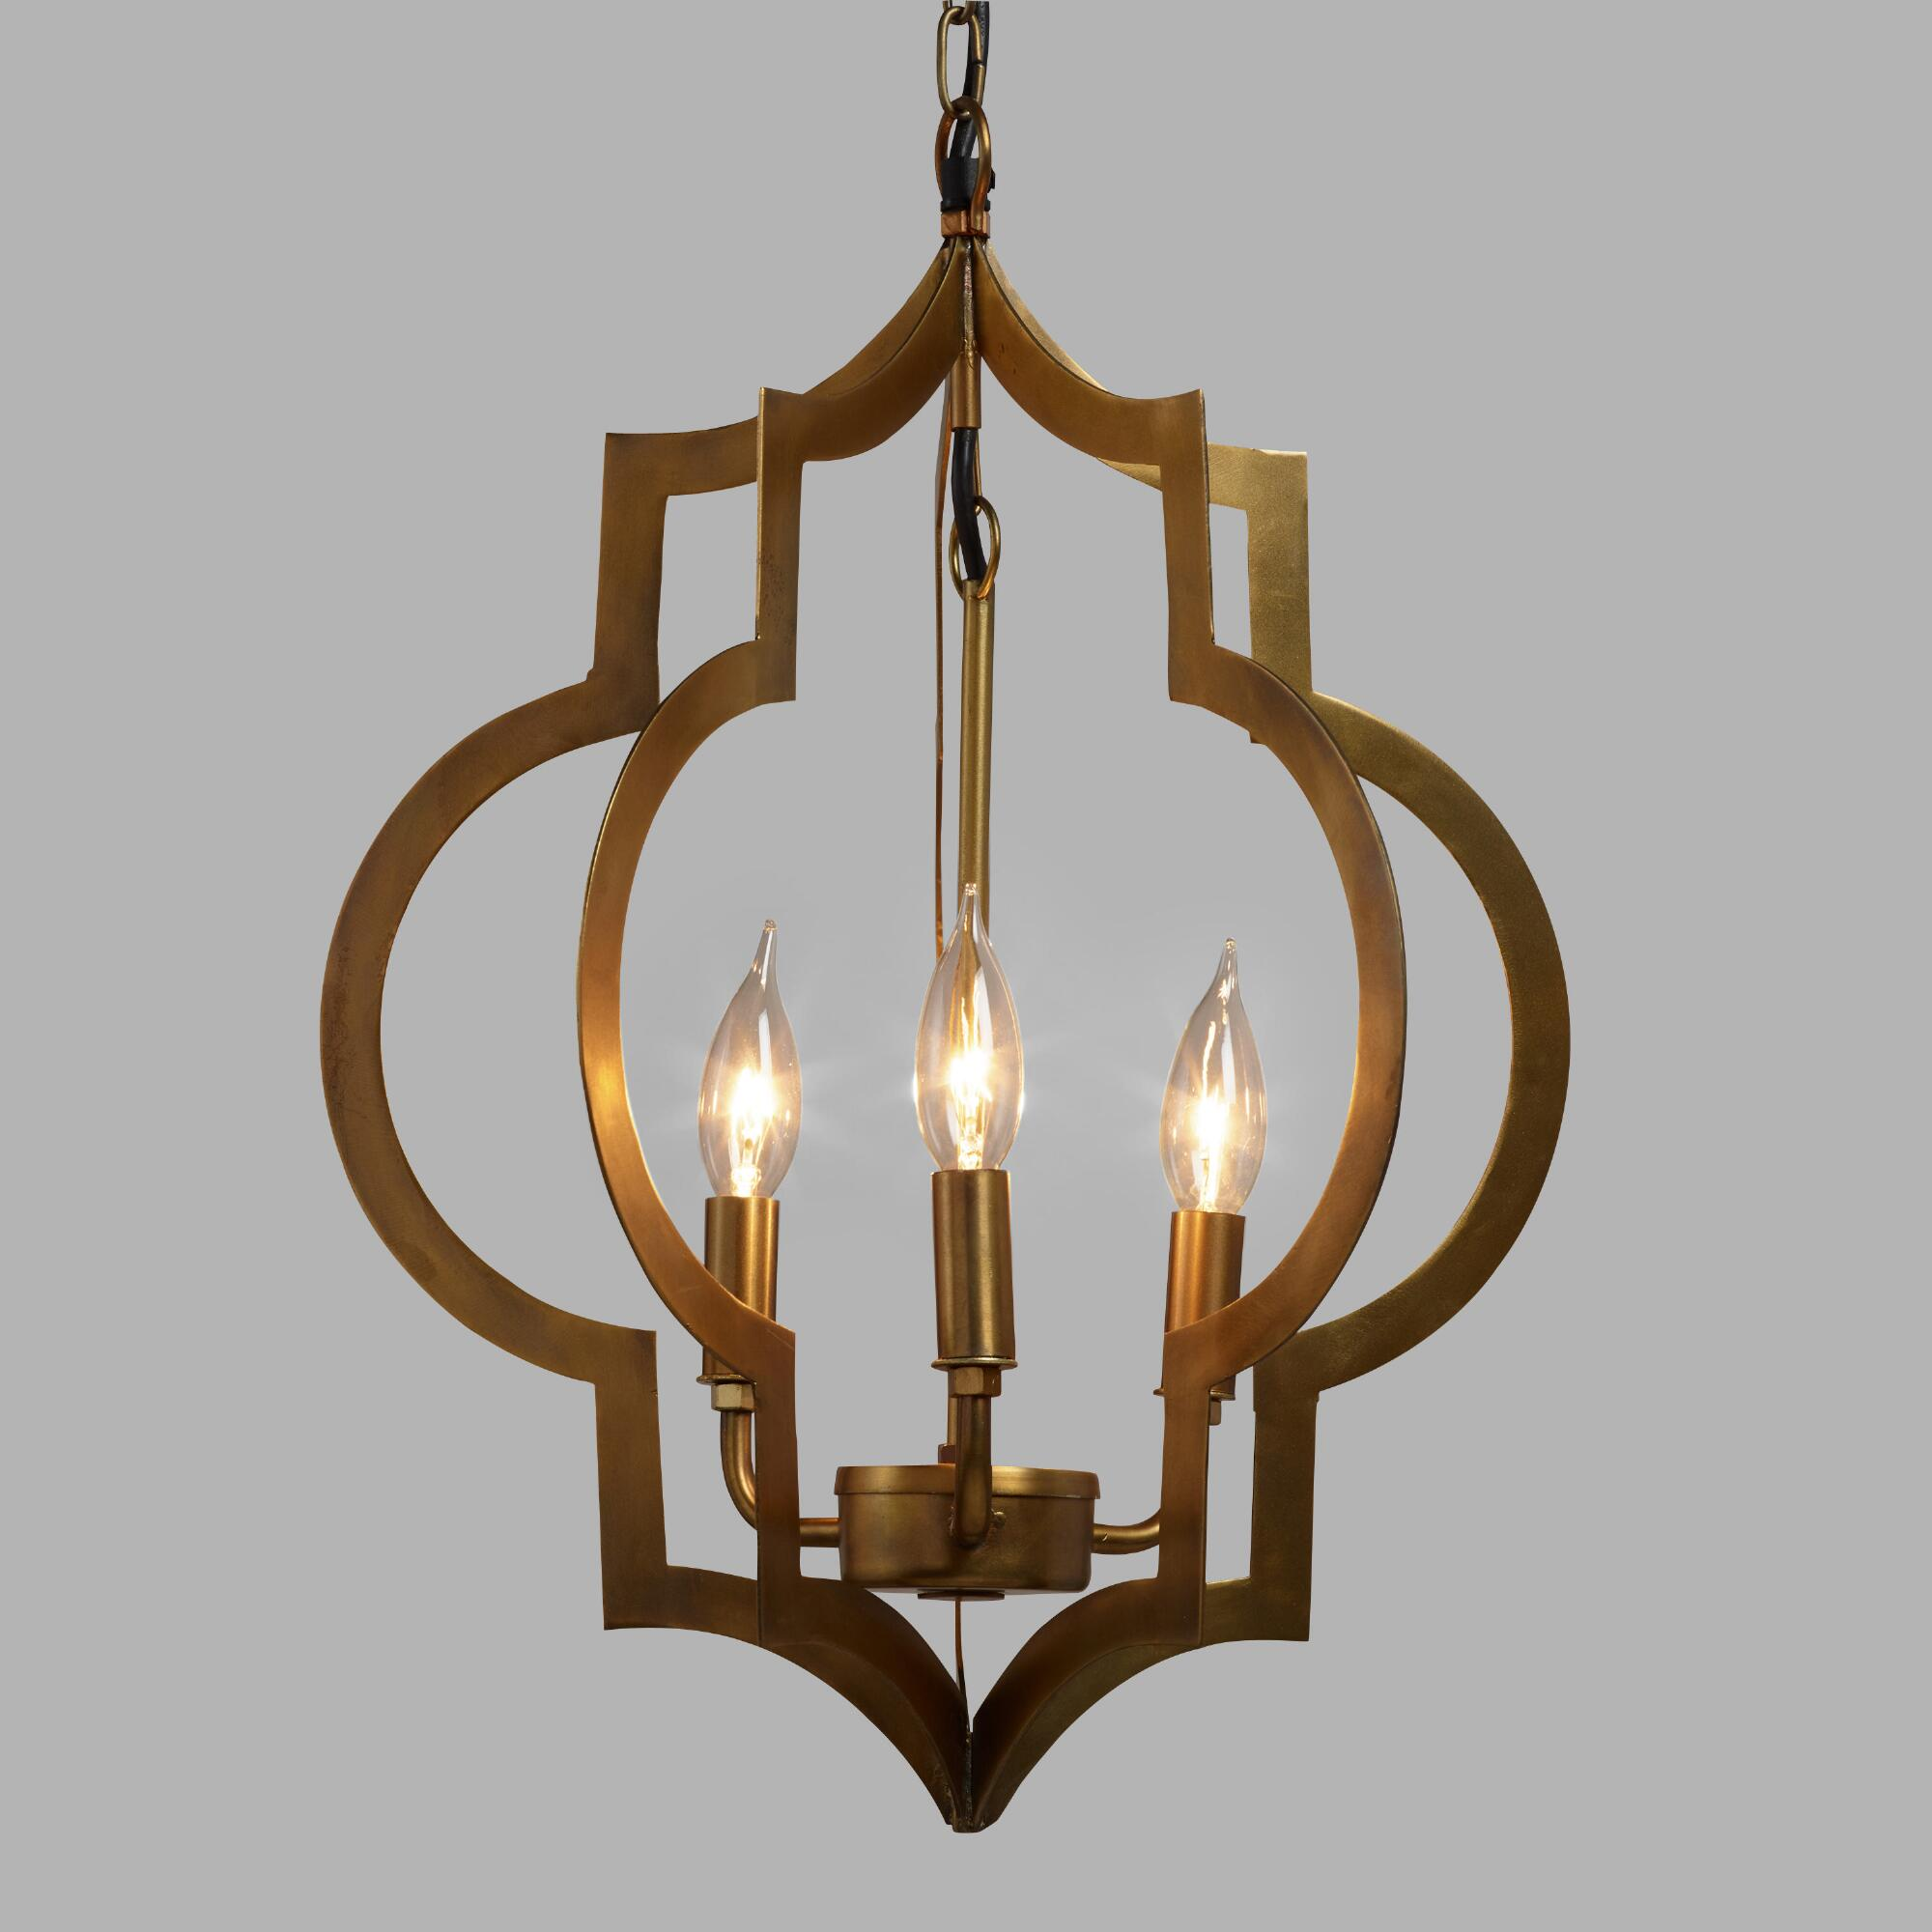 Gold quatrefoil 3 light pendant lamp world market - Light fixtures chandeliers ...